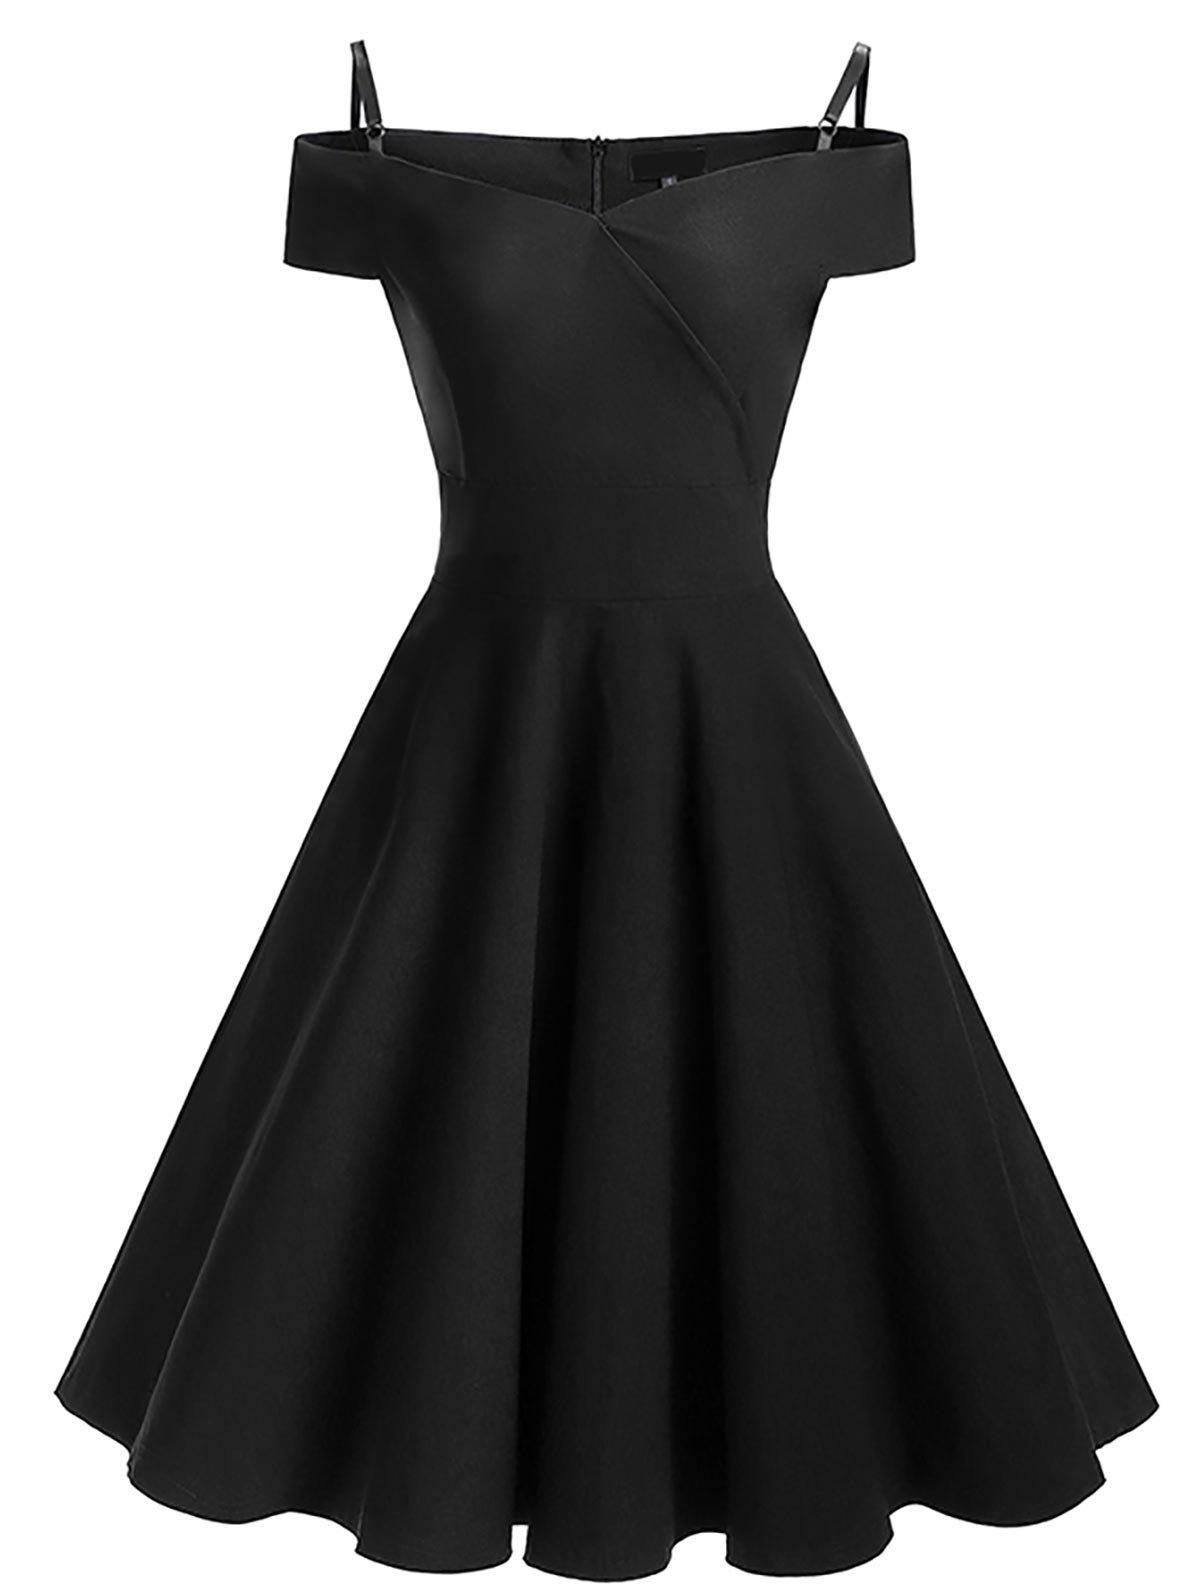 Vintage Cold Shoulder Pin Up Skater DressWOMEN<br><br>Size: M; Color: BLACK; Style: Vintage; Material: Cotton,Polyester; Silhouette: A-Line; Dresses Length: Knee-Length; Neckline: Spaghetti Strap; Sleeve Type: Cold Shoulder; Sleeve Length: Short Sleeves; Pattern Type: Solid; With Belt: No; Season: Fall,Spring; Weight: 0.4300kg; Package Contents: 1 x Dress;